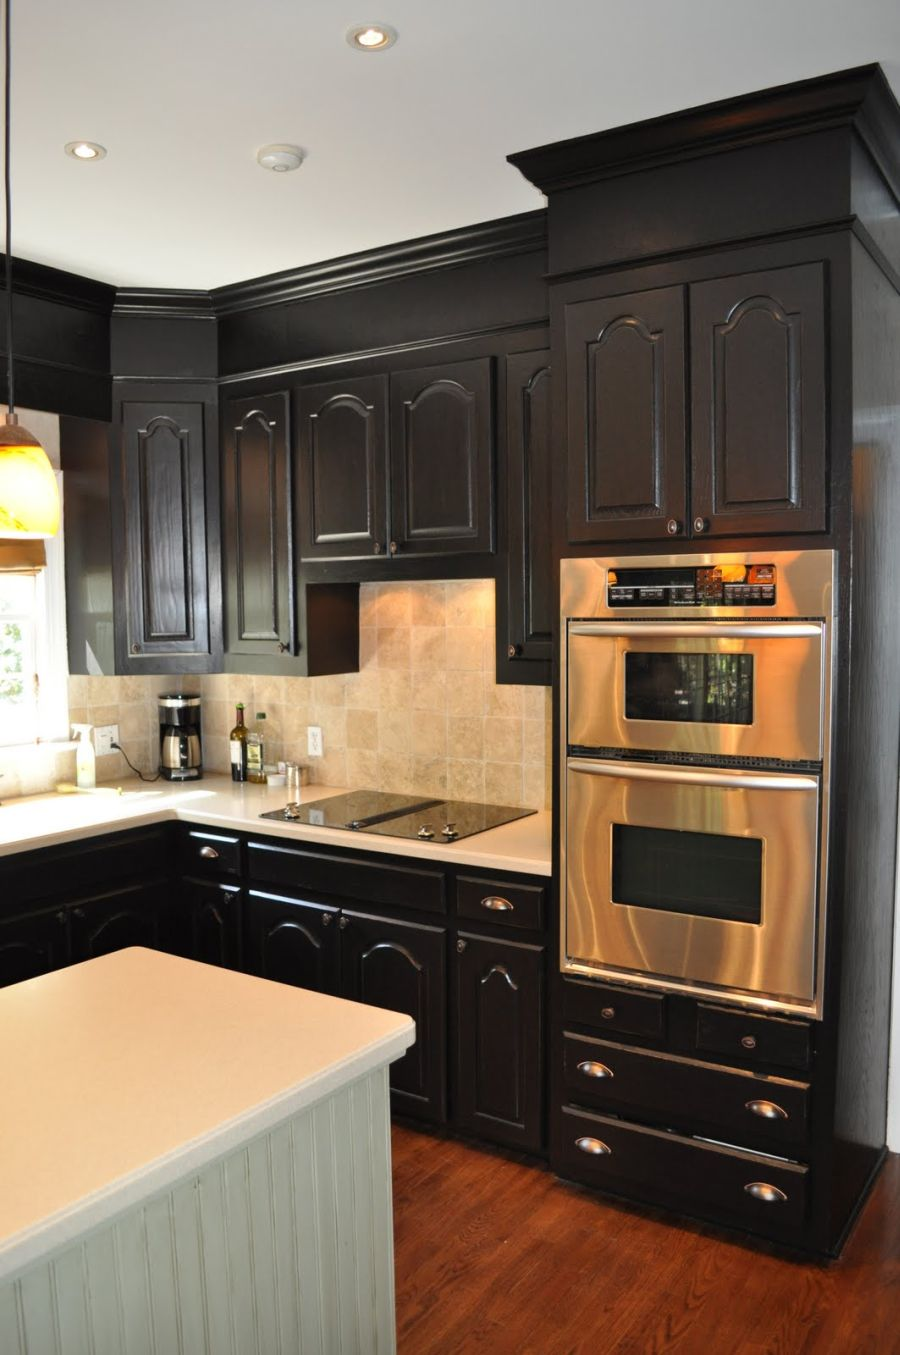 black kitchen cabinets black cabinets with soffits. VDKHFCC